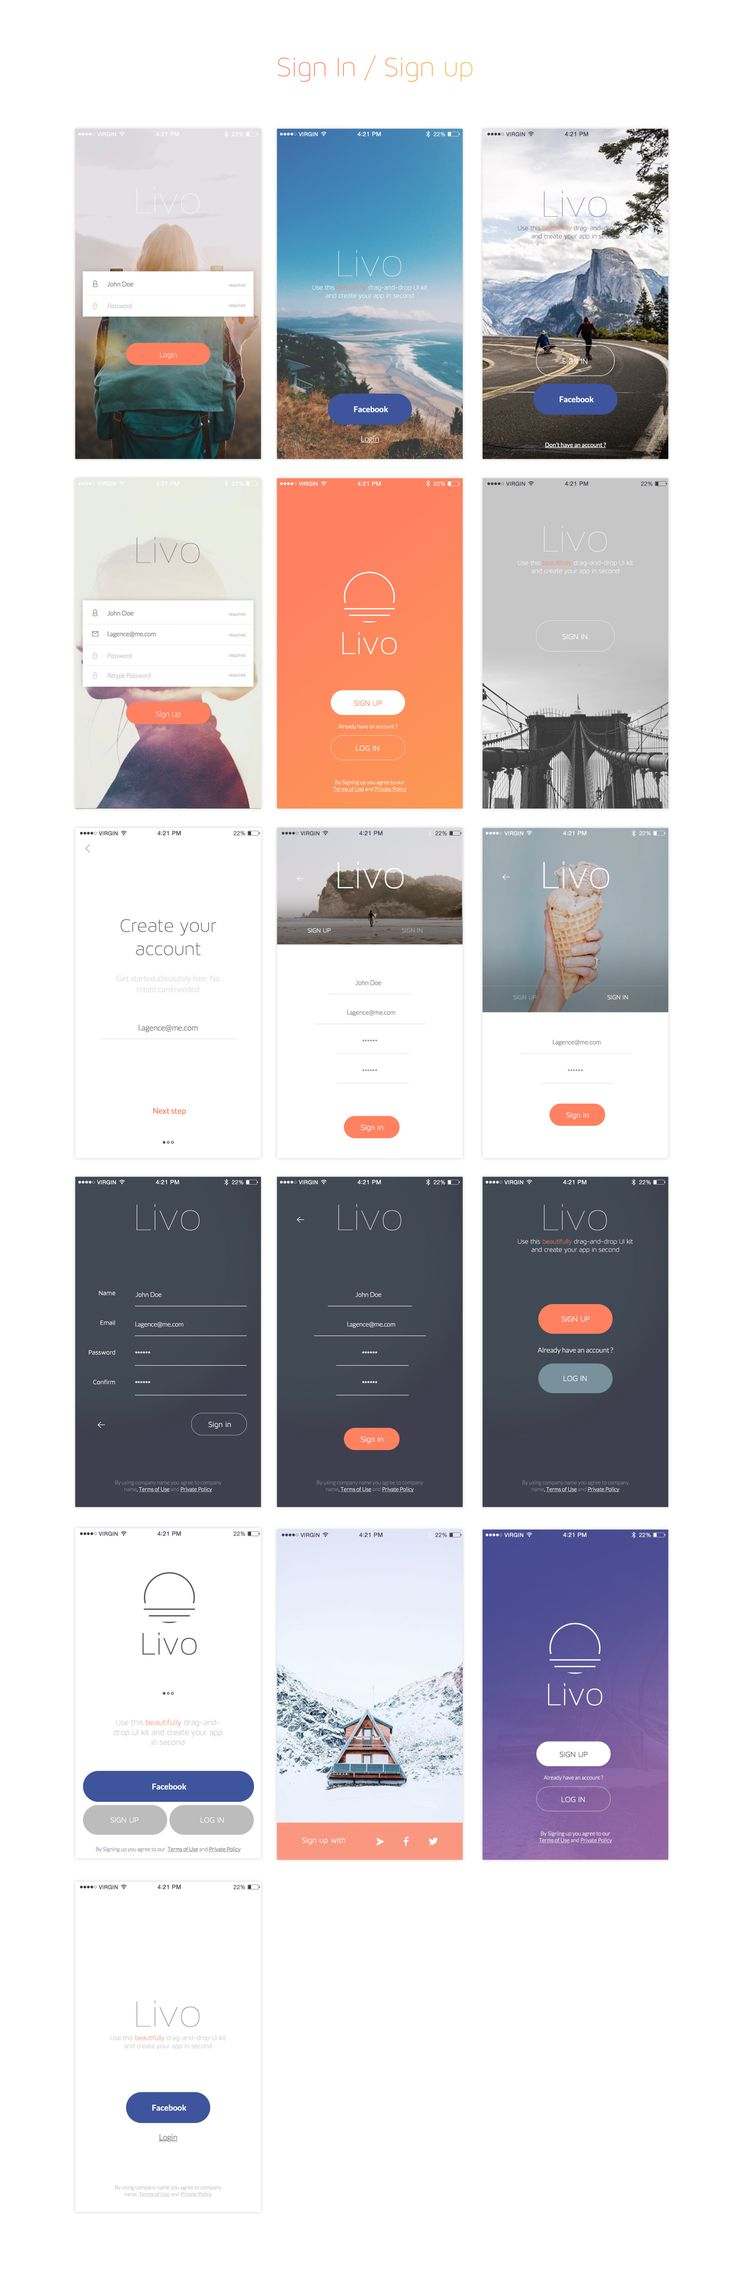 Livo UI Kit for Sketch & Photoshop is a modern, stylish, and intuitive kit for creating your app! This UI Kit contains more than 210 elaborate mobile screens in 8 categories. Each screen is fully customizable, & exceptionally easy to use!